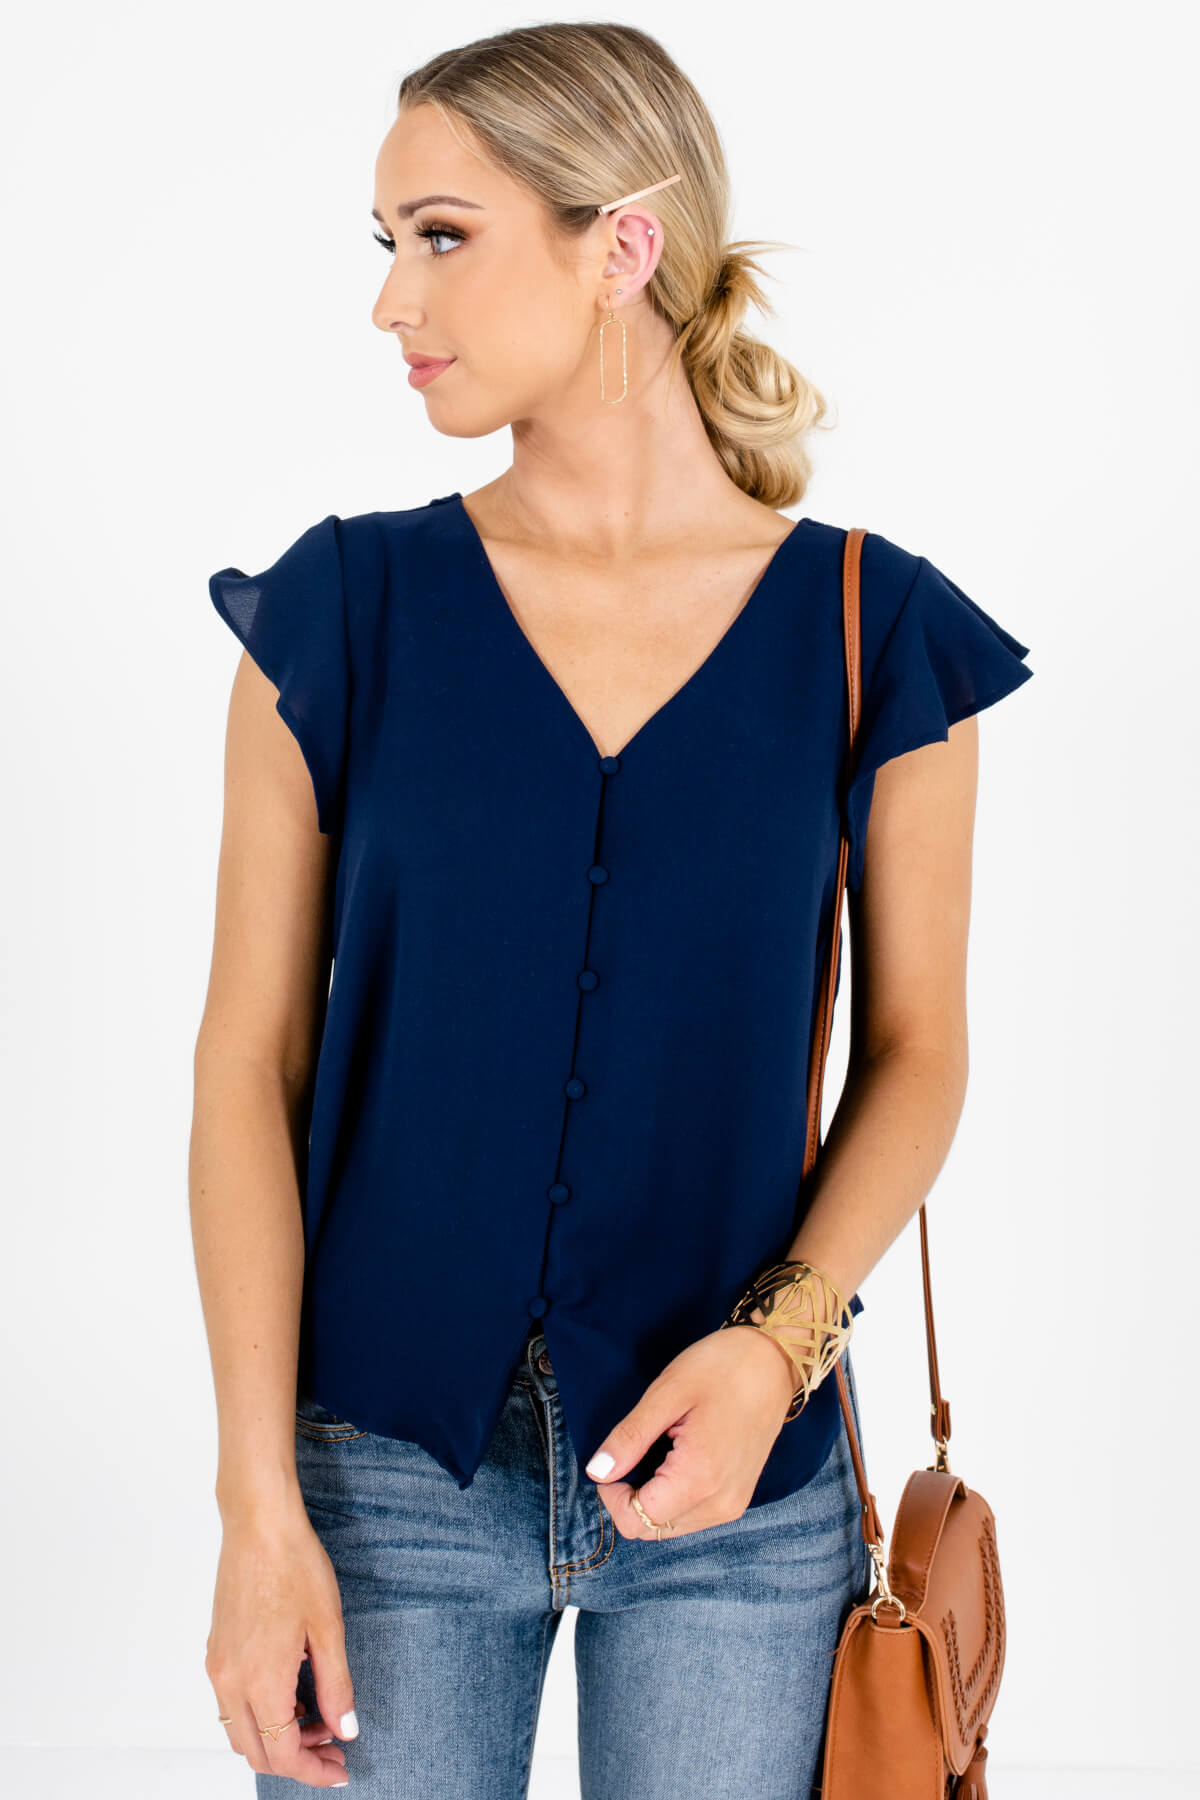 Navy Blue Button-Up Flutter Sleeve Blouses with Floral Tie Detail